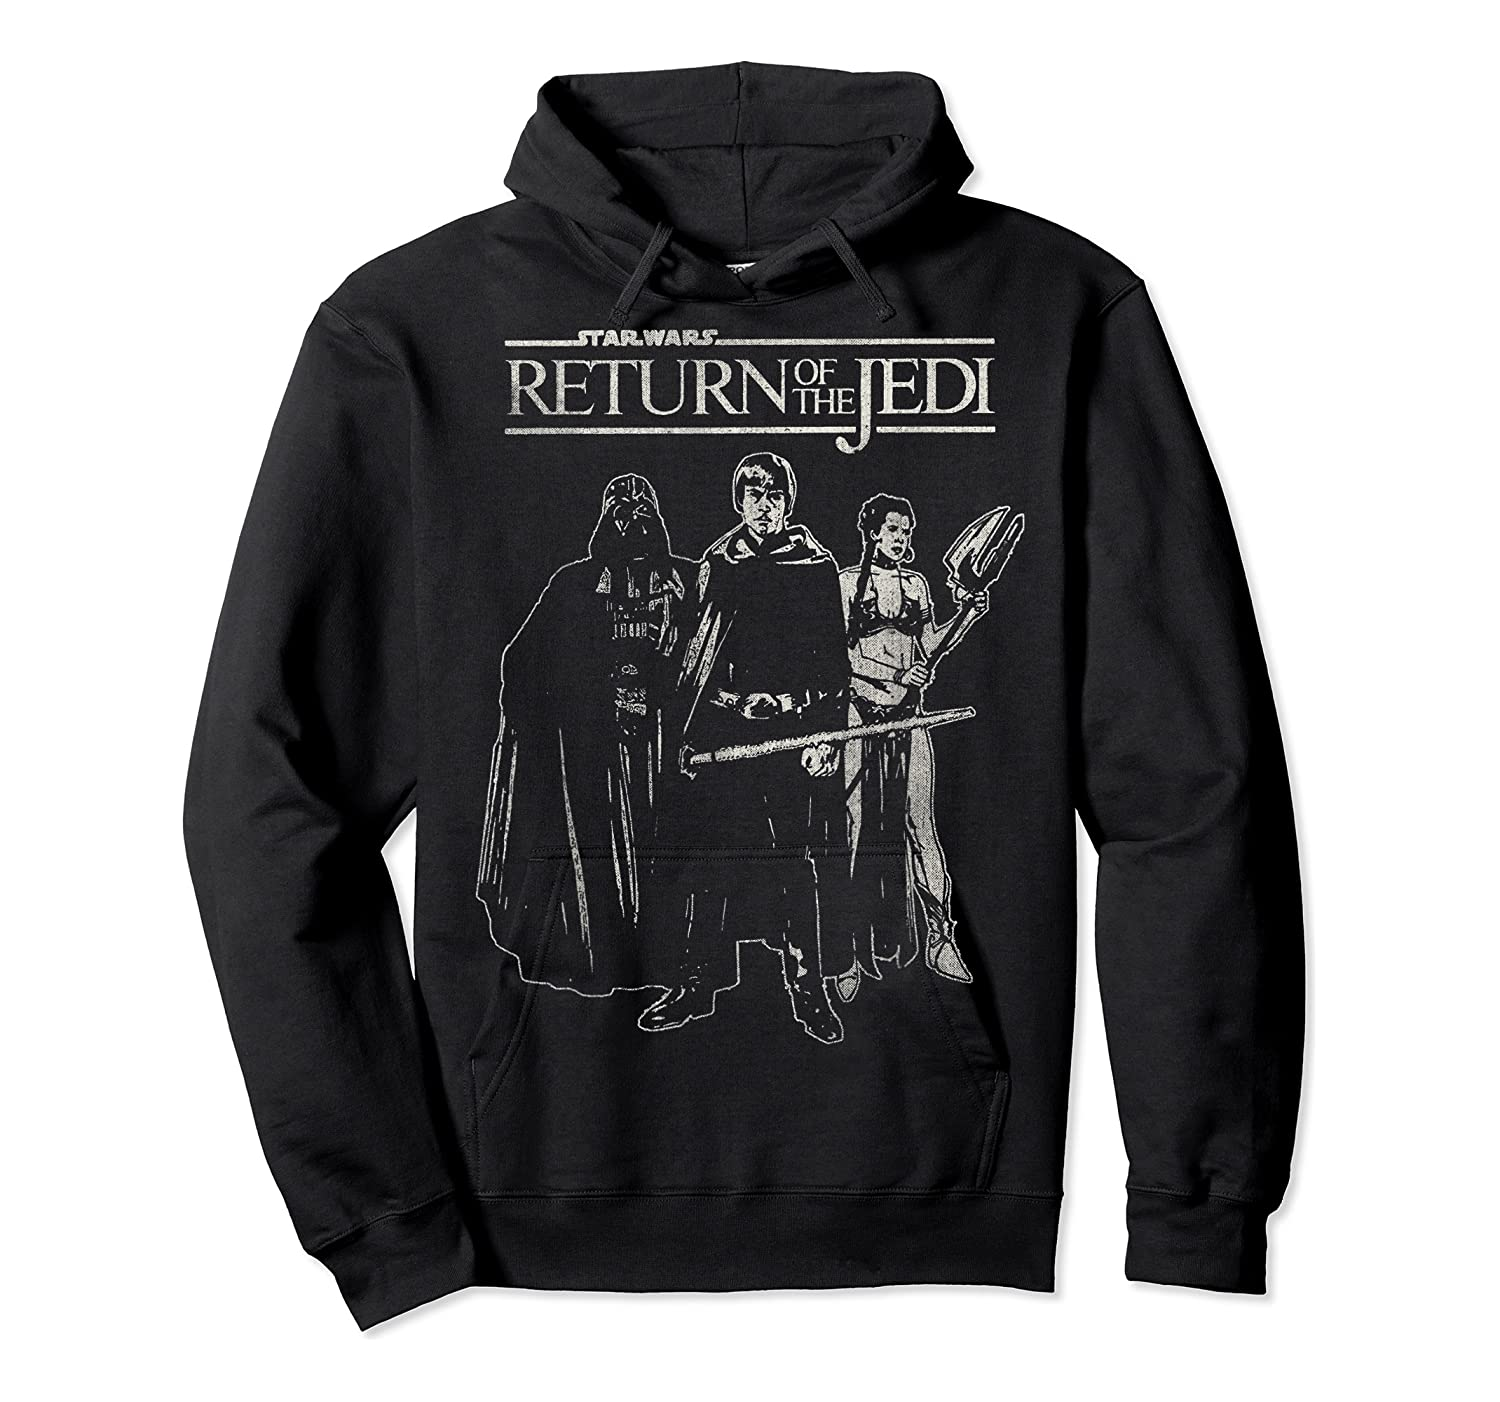 S The Return Group Poster Shirts Unisex Pullover Hoodie